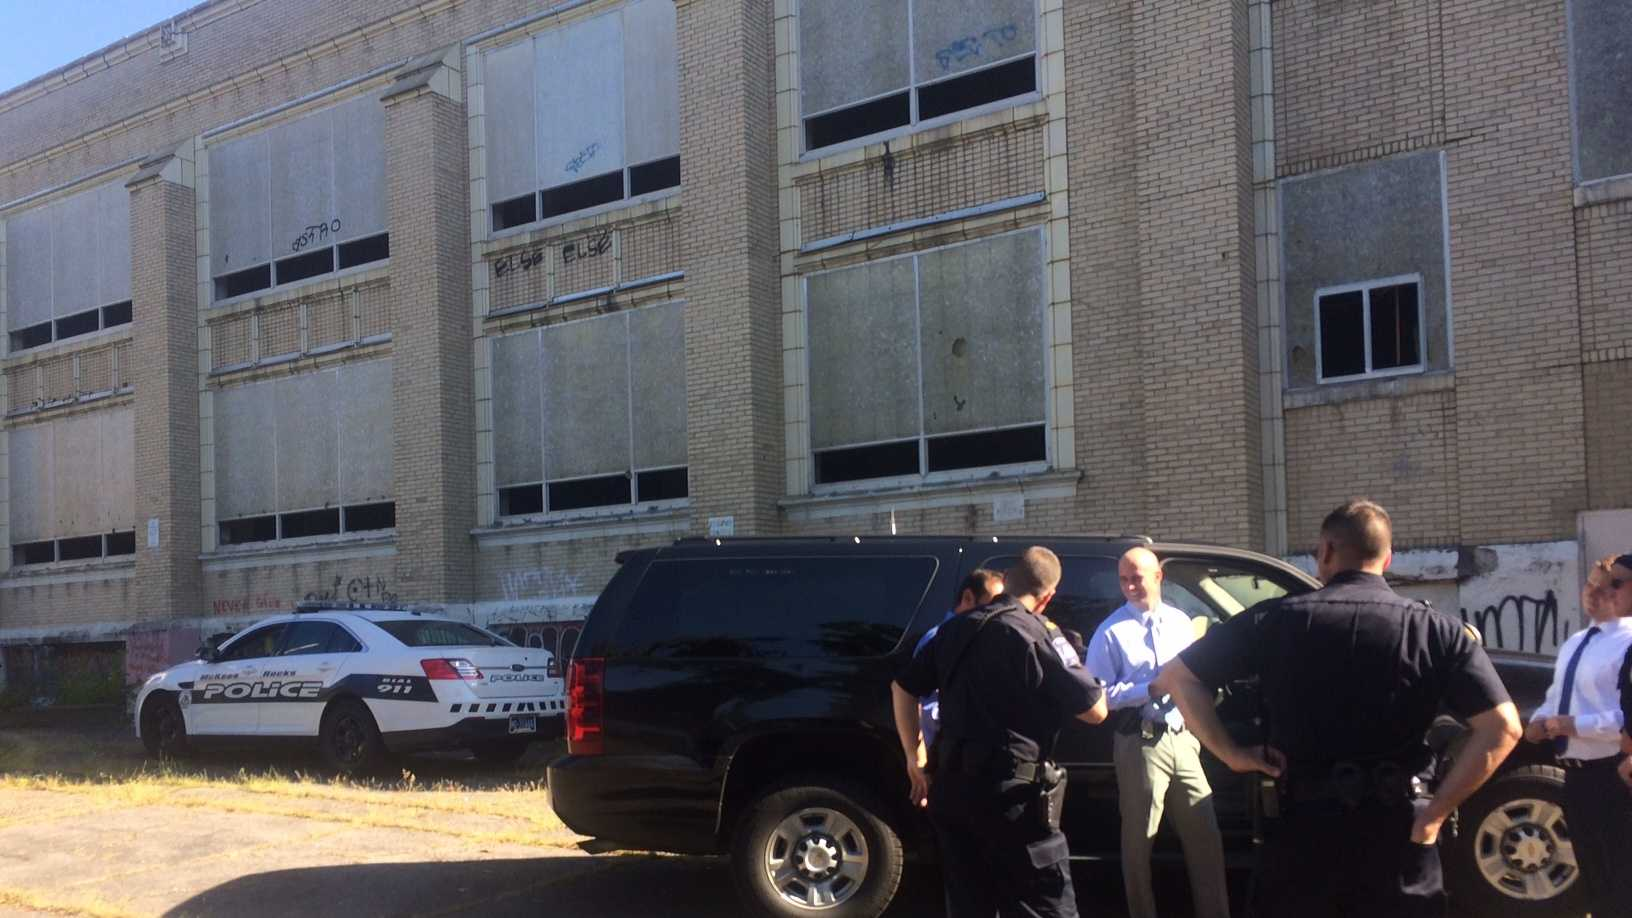 Police are investigating after a body was found in an abandoned McKees Rocks school Tuesday morning. (Bob Mayo)